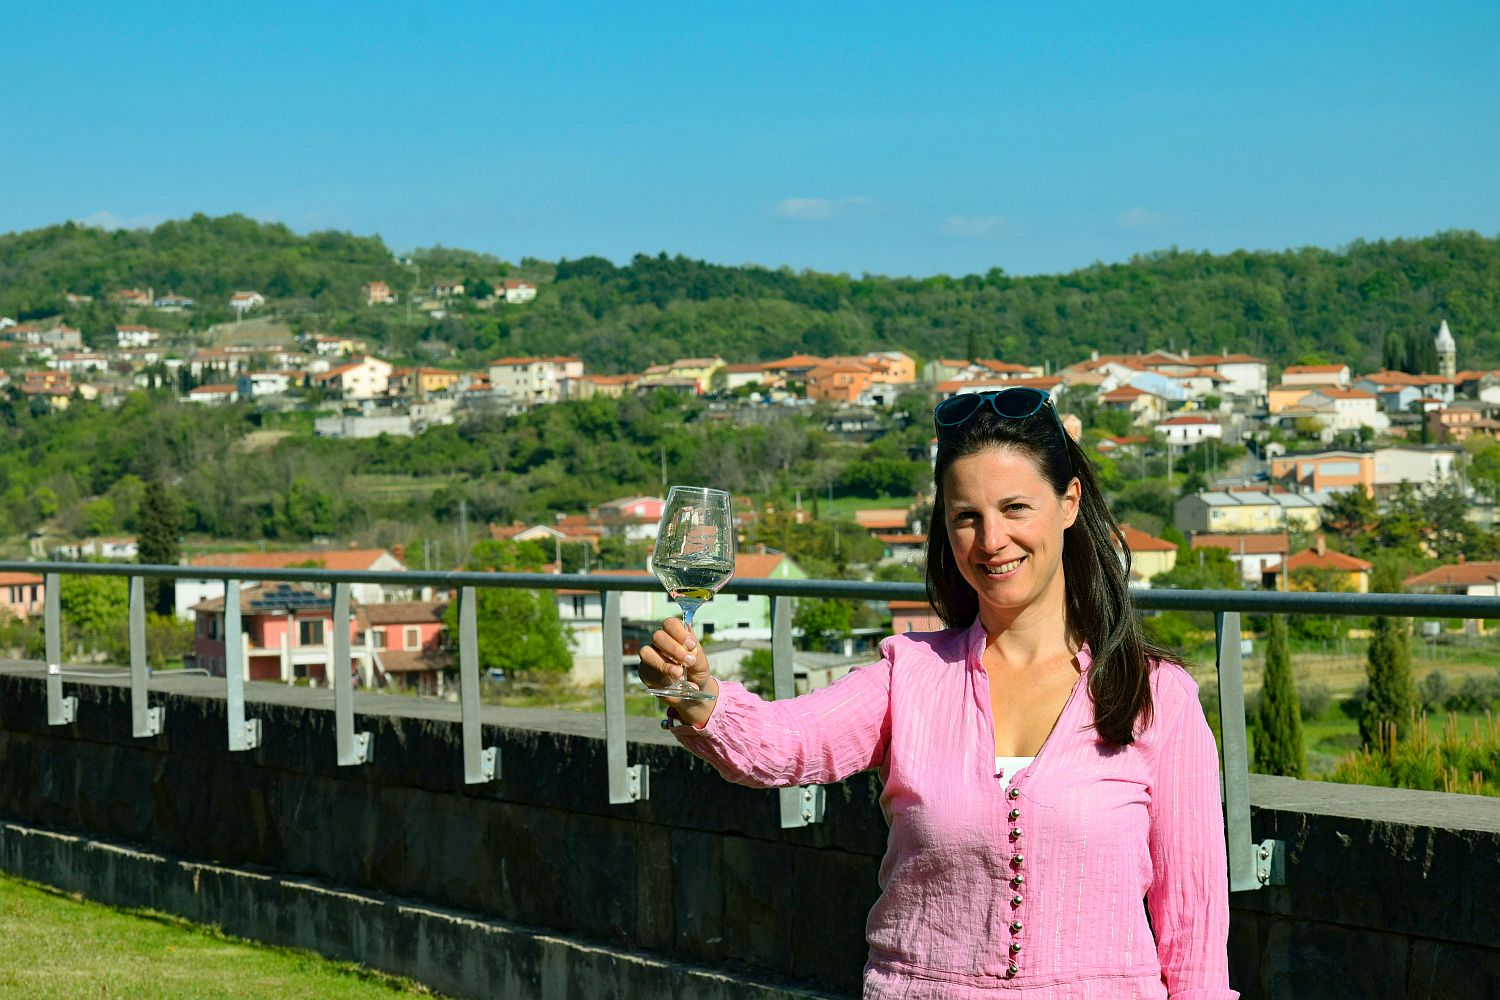 Denise Rejec of Wine Dine Slovenia raises a wine glass on the terrace at Santomas winery